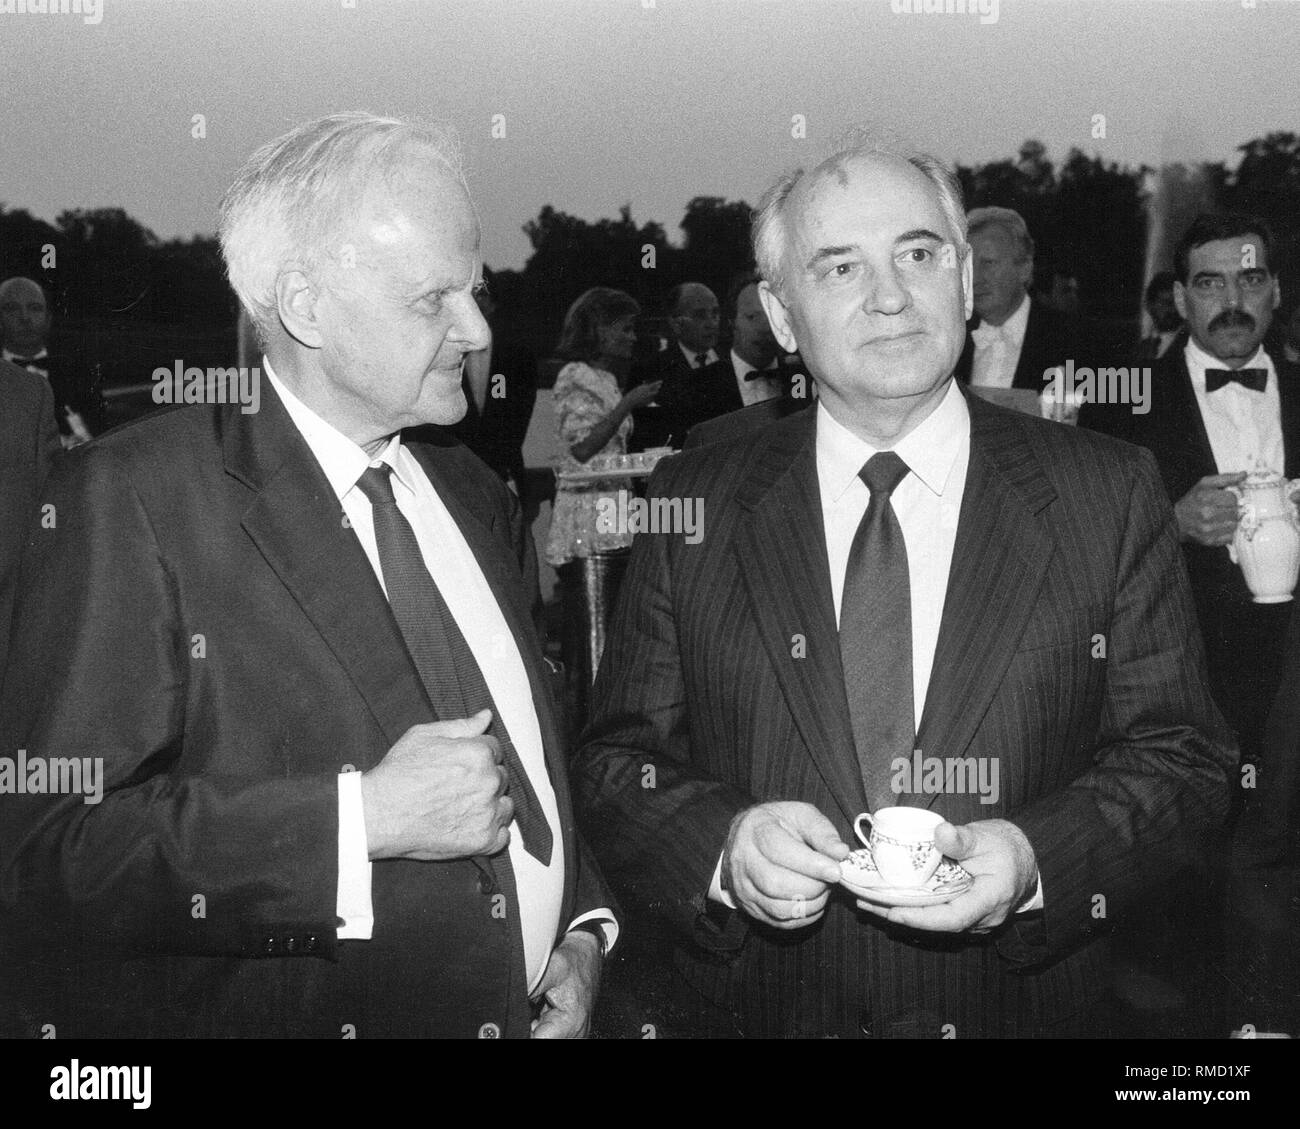 Carl Friedrich von Weizsaecker and Mikhail Gorbachev on the occasion of a meeting in Castle Augustusburg on June 13, 1989. - Stock Image